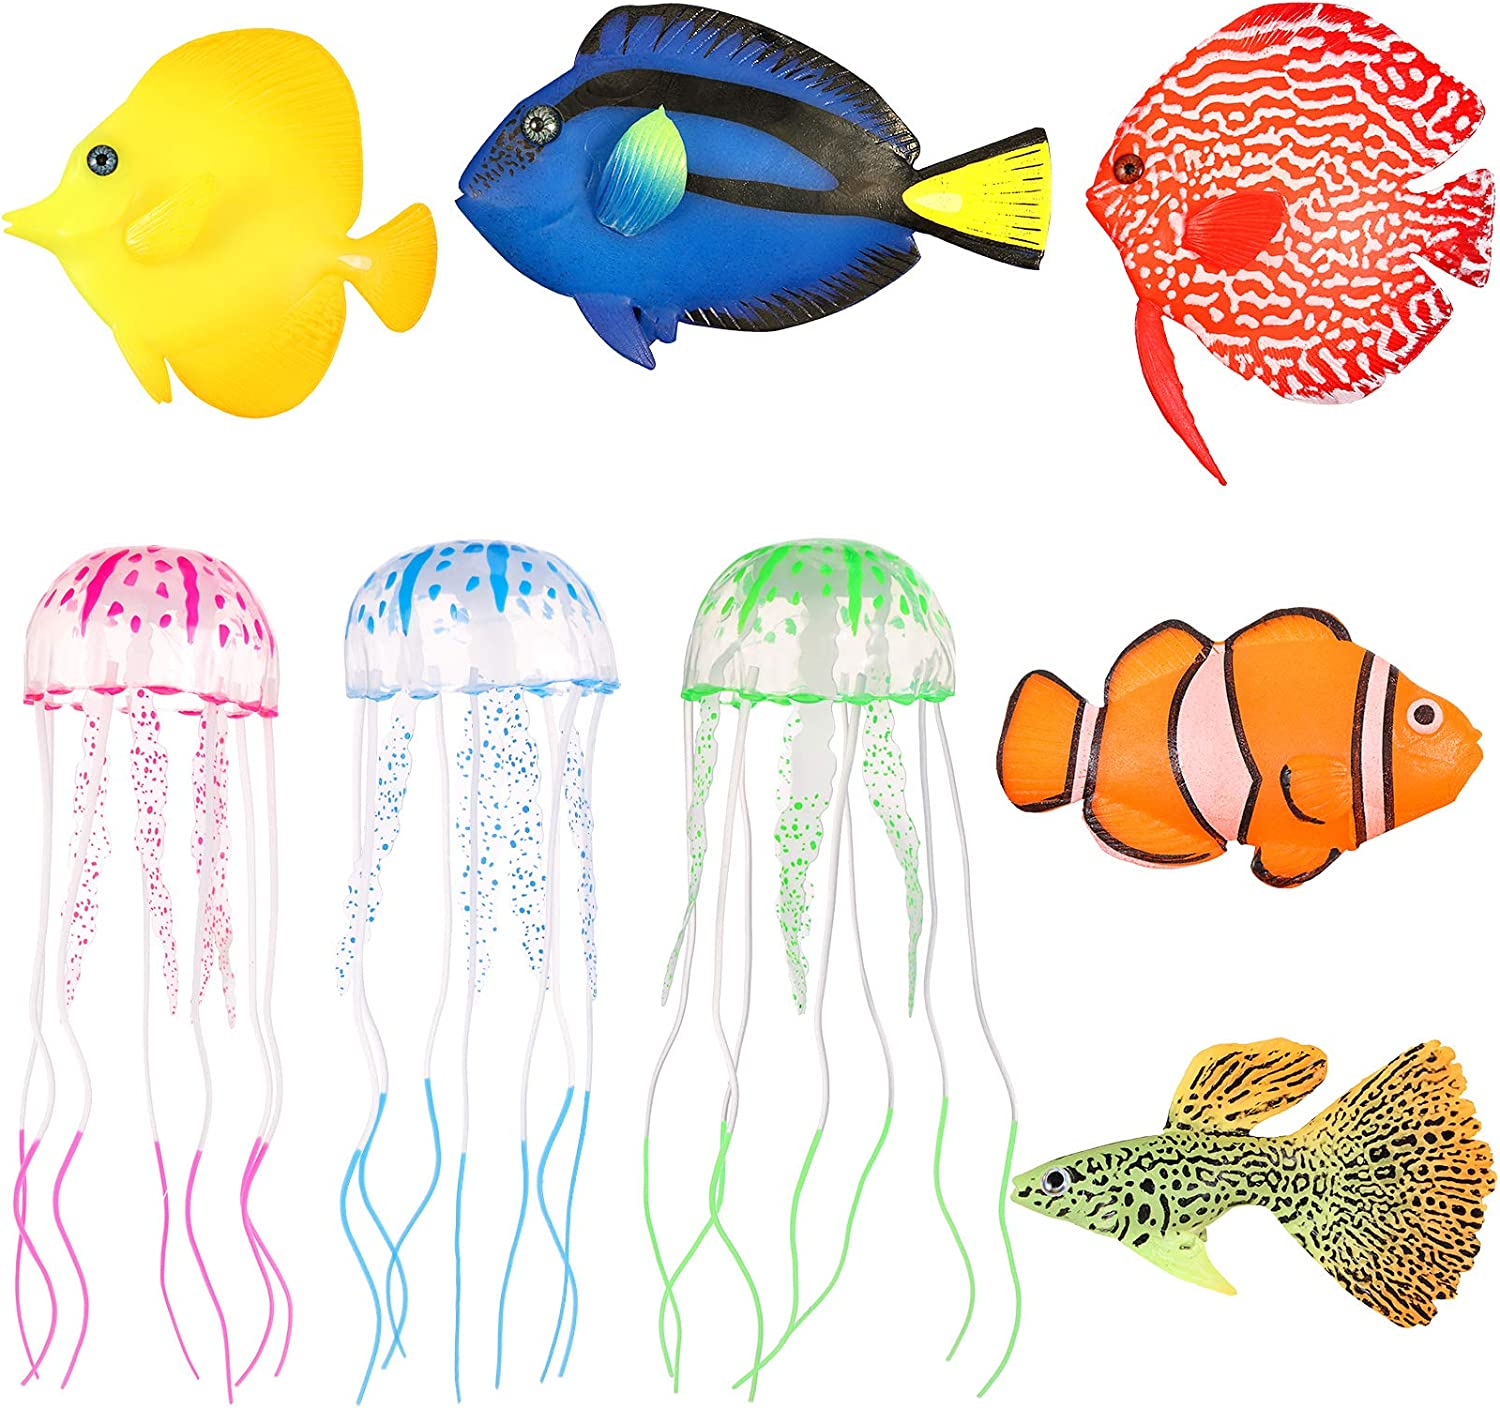 Weewooday 5 Pieces Artificial Glowing Fish and 3 Pieces Glowing Jellyfish Silicone Fake Floating Fish for Aquarium Fish Tank Ornament Decoration